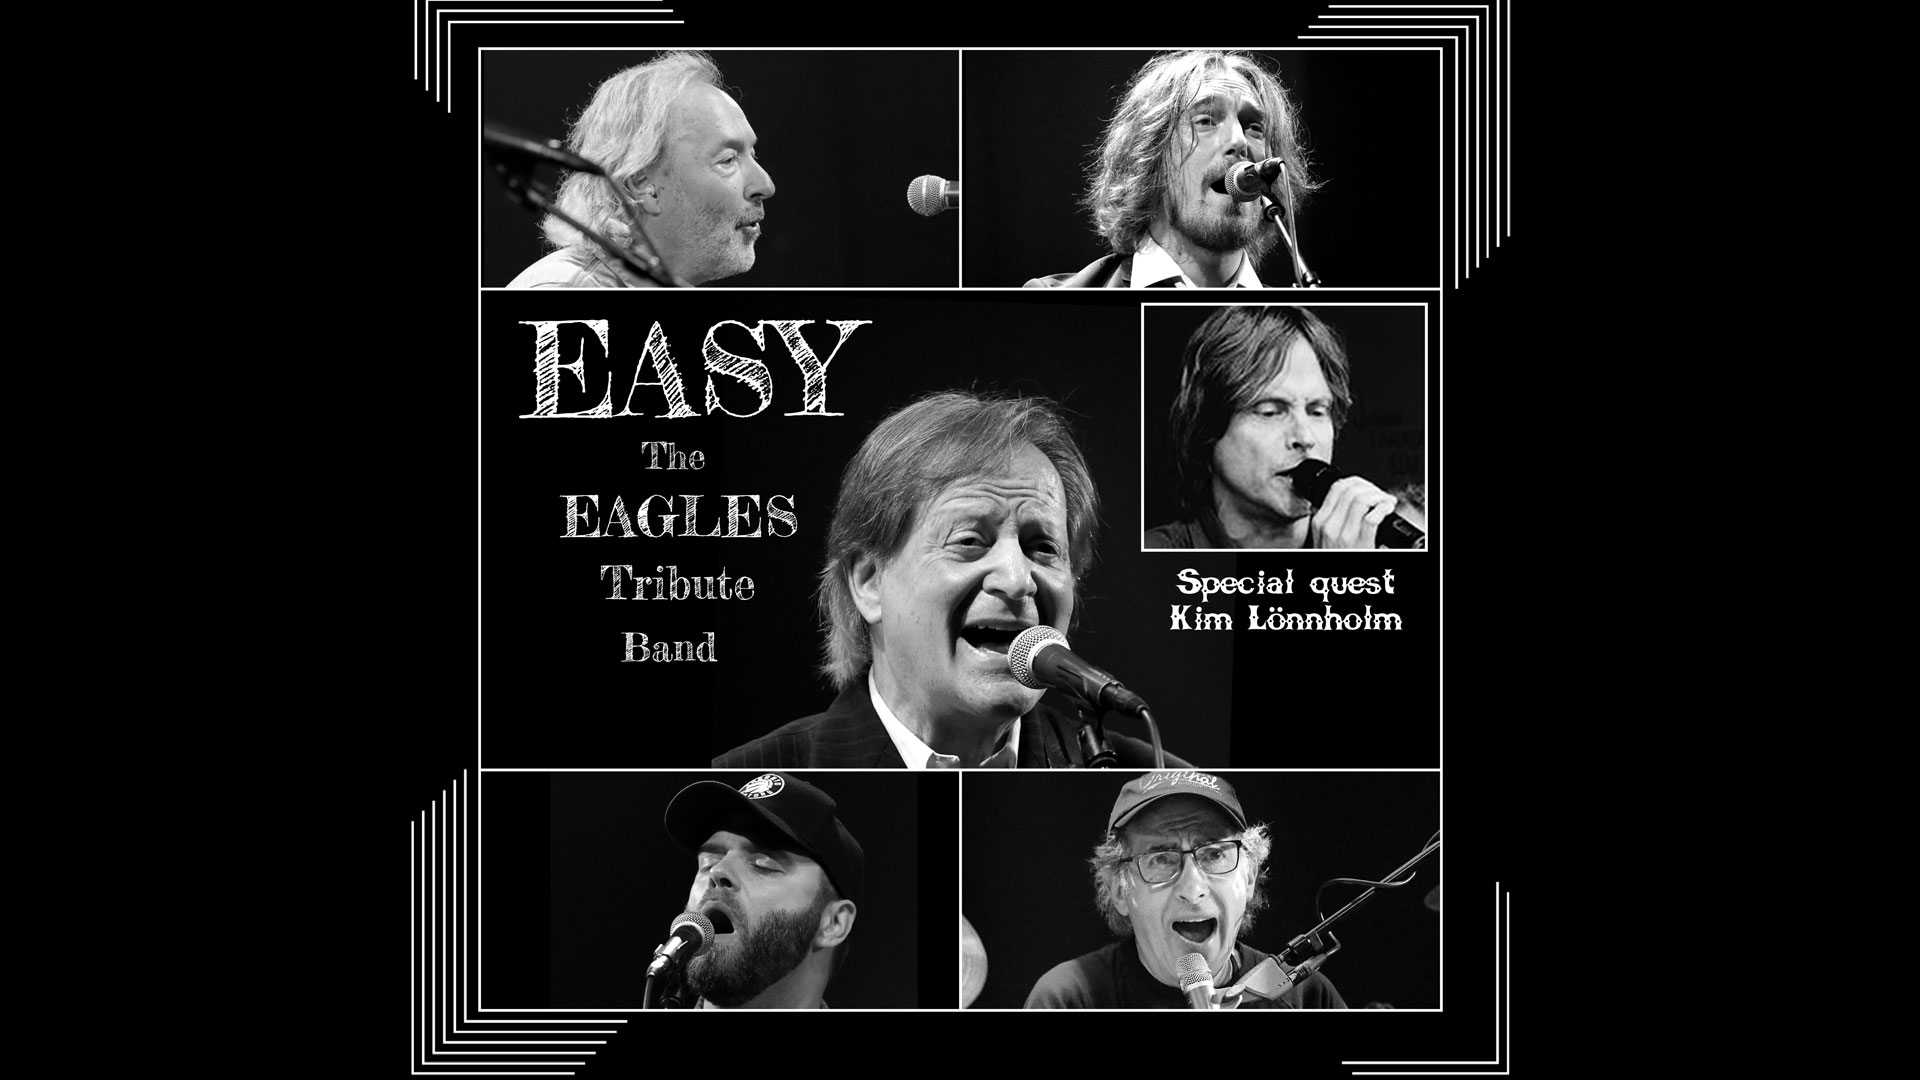 Easy - The Eagles Tribute Band la 4.4.2020 klo 20.00